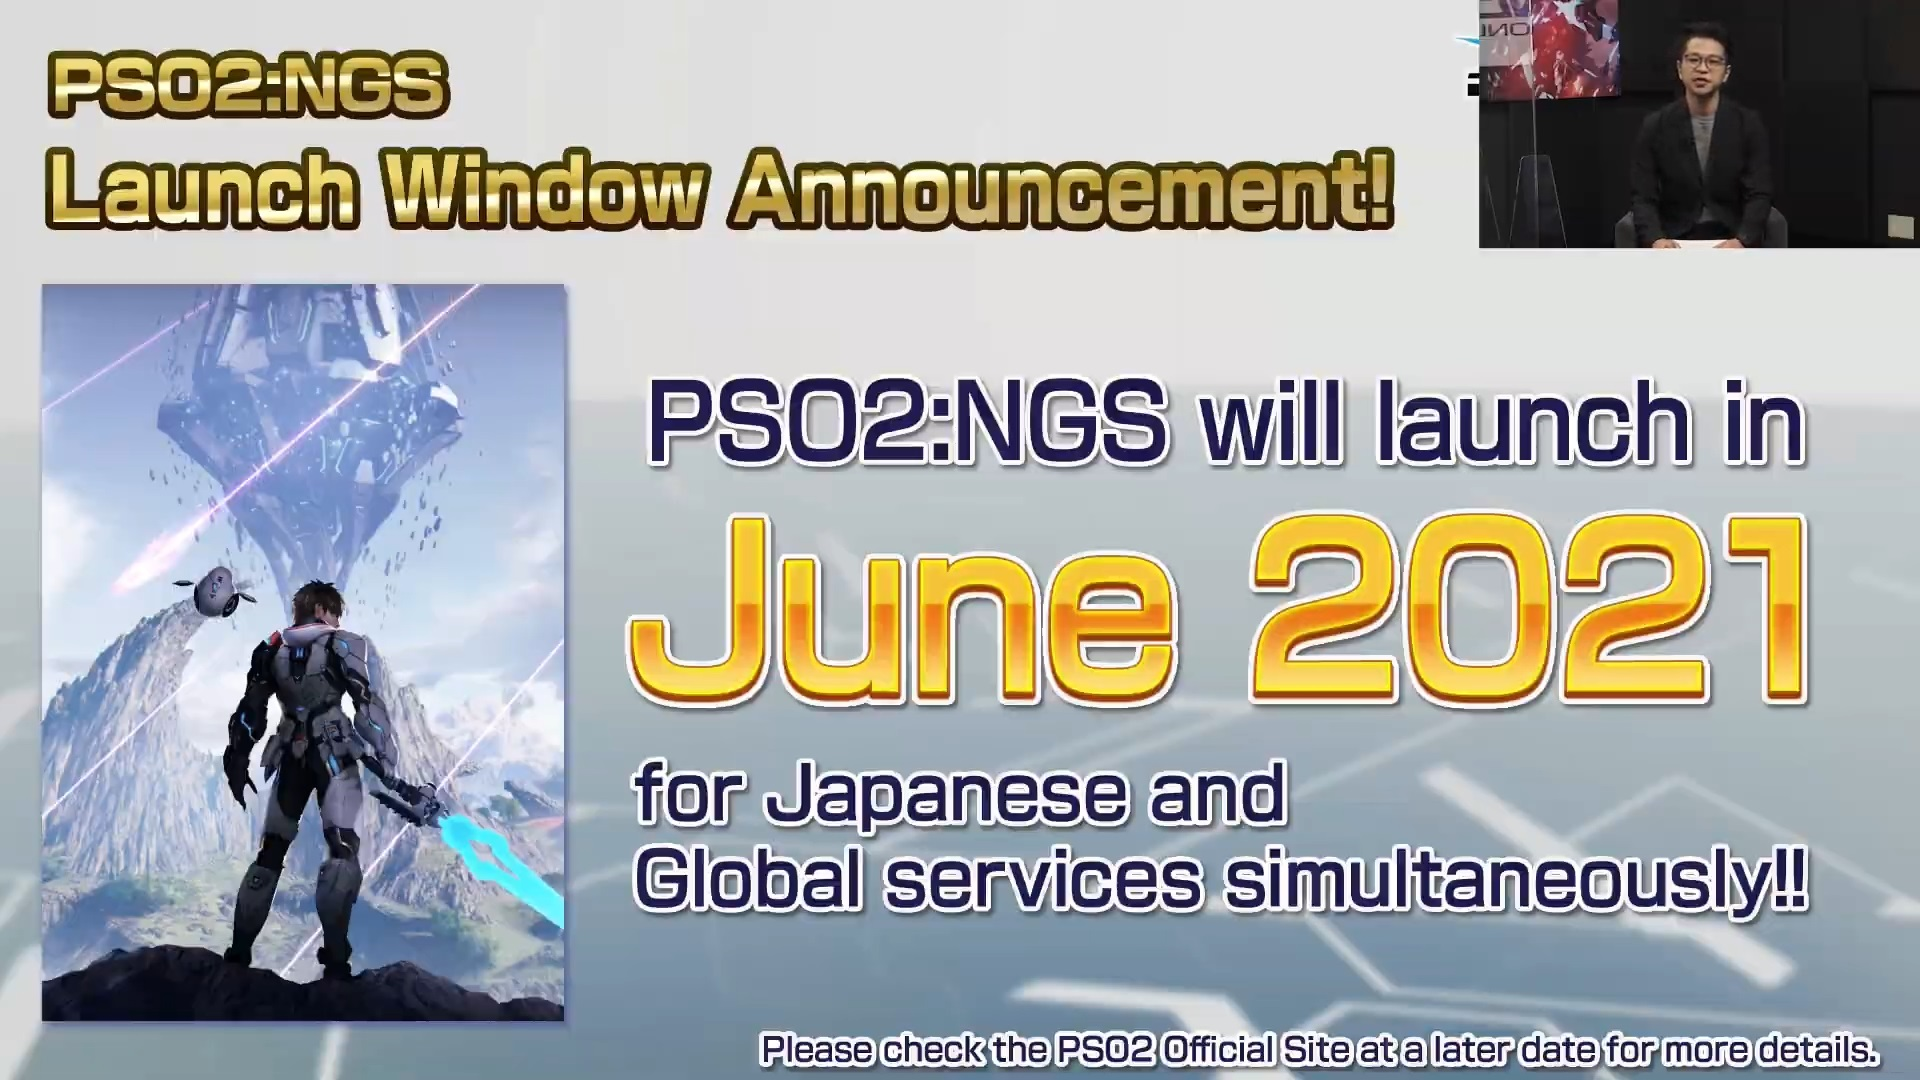 Phantasy Star Online 2 New Genesis is coming a lot sooner than we thought screenshot